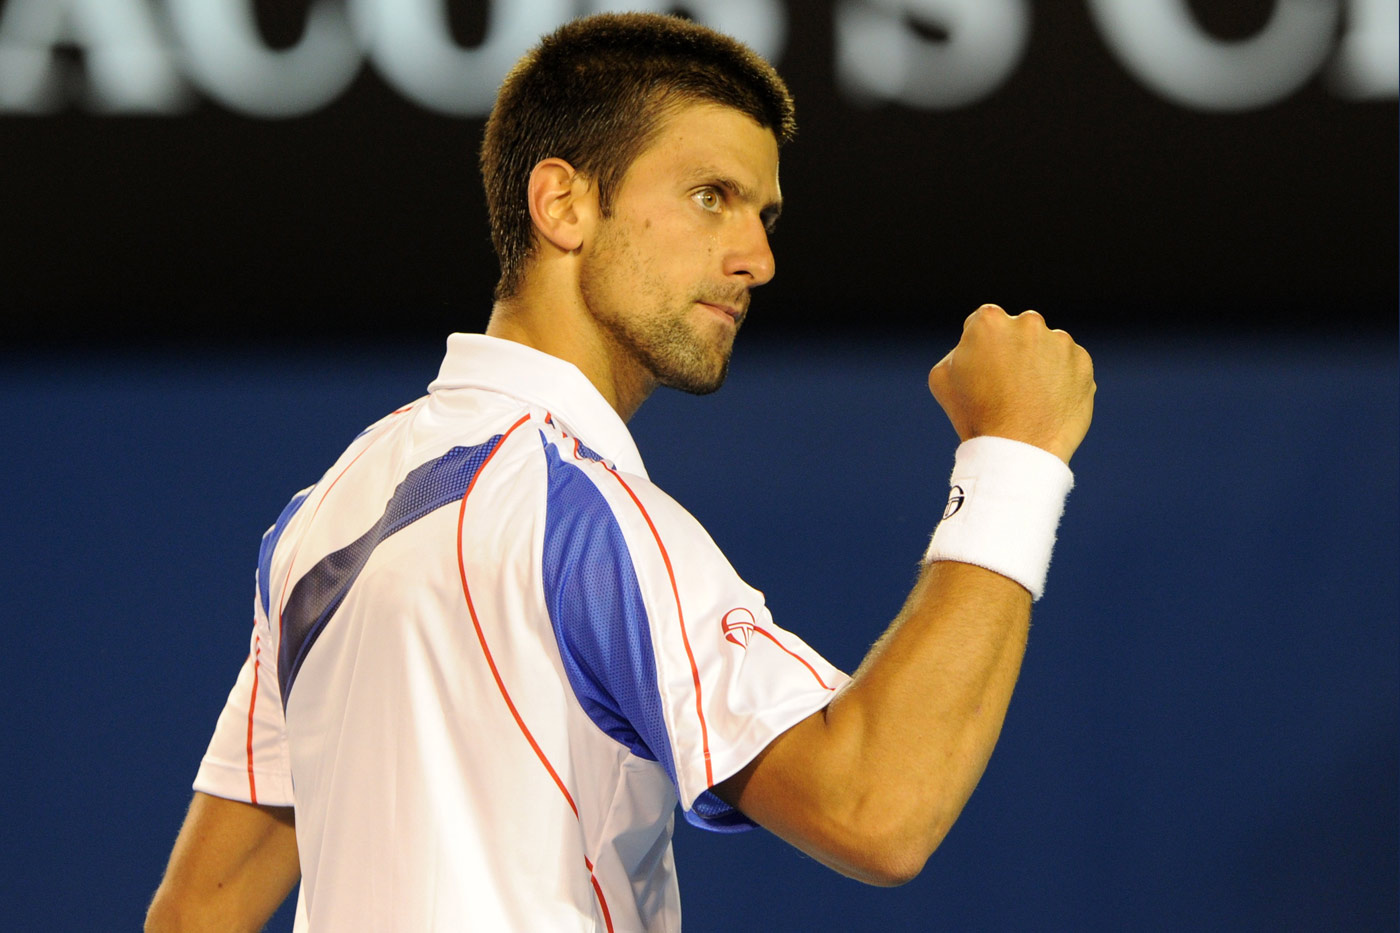 Novak Djokovic 2013 Season Review